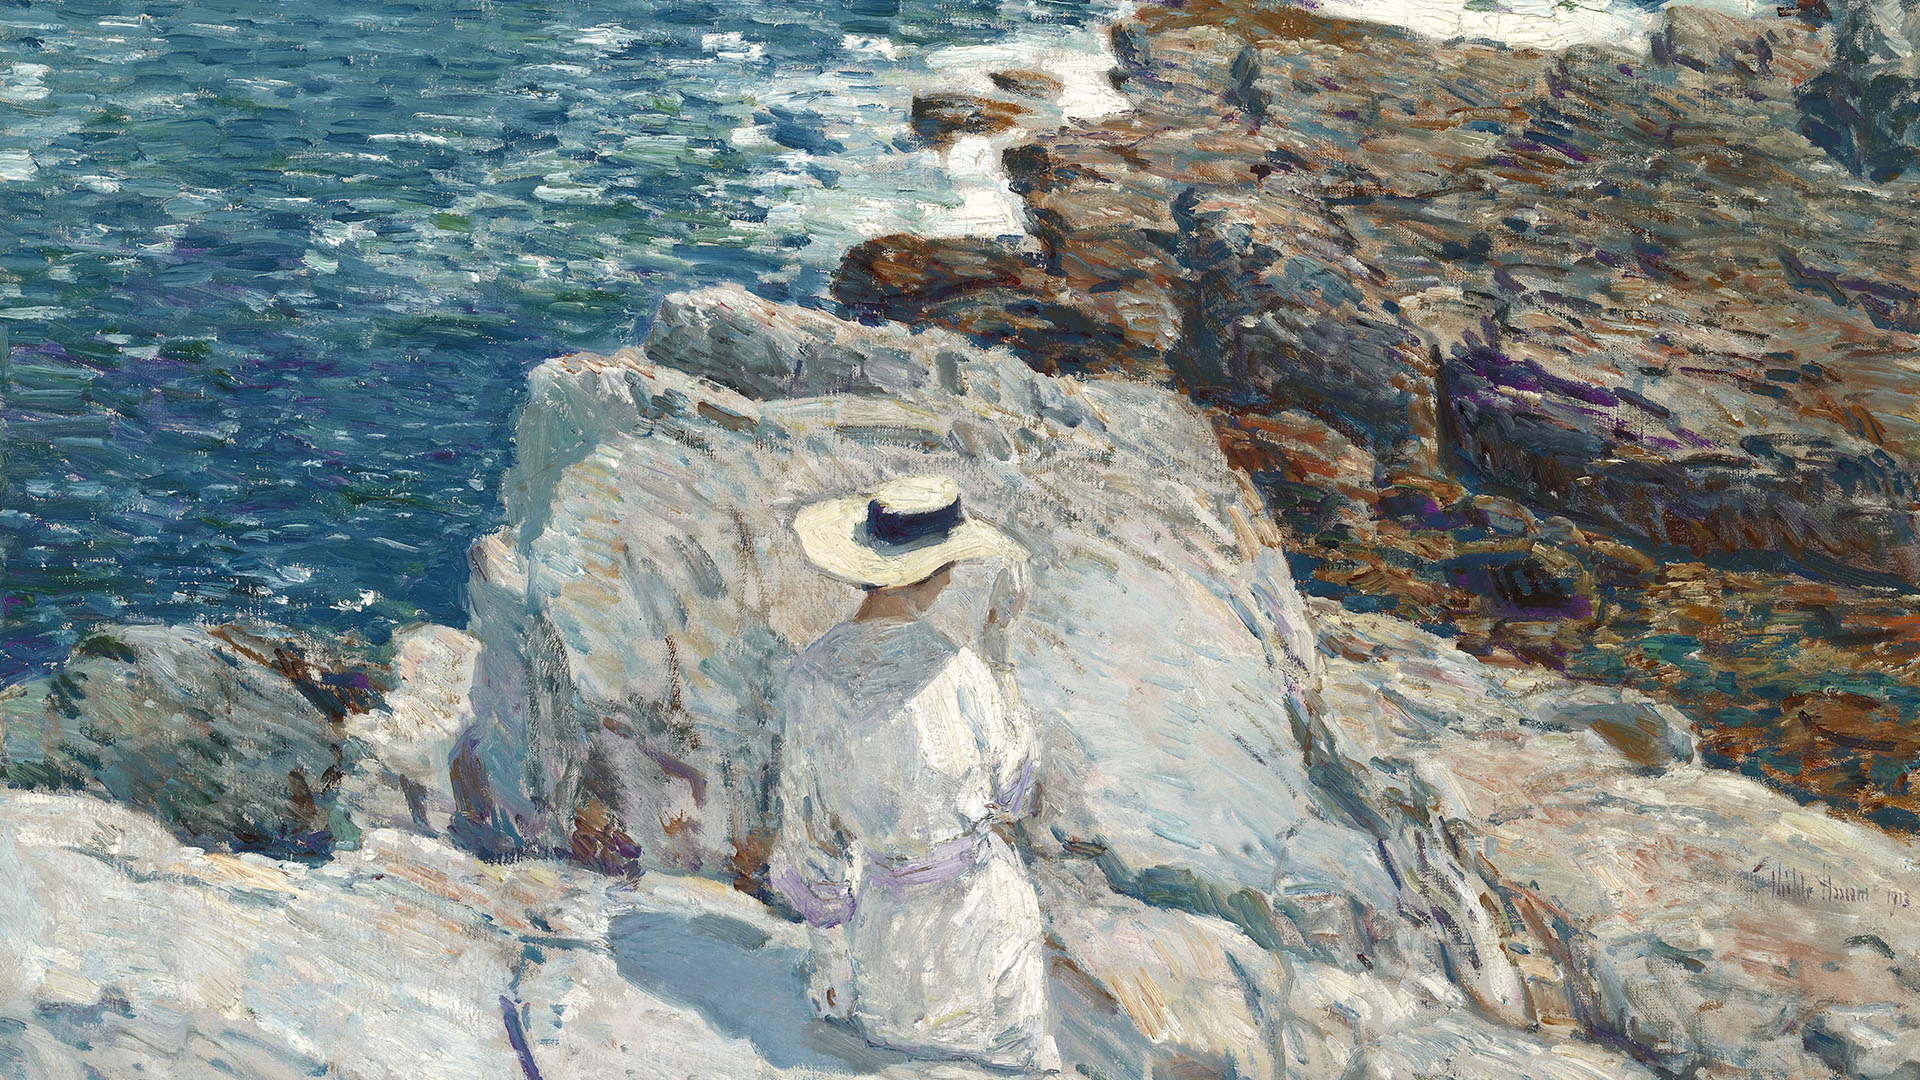 Childe Hassam - The South Ledges, Appledore 1920x1080